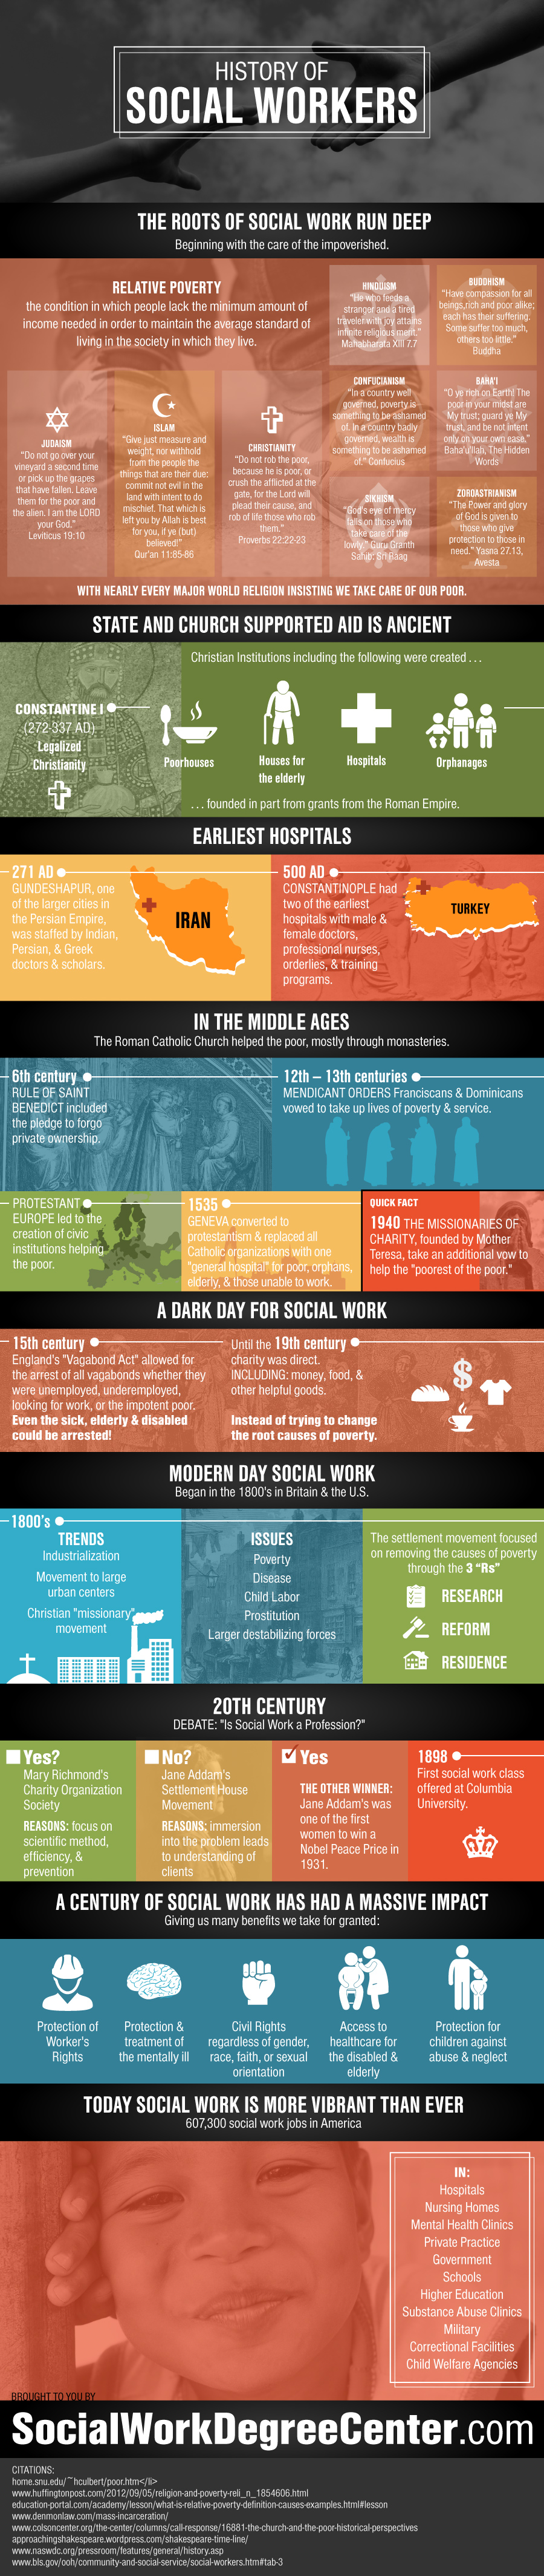 History of Social Workers